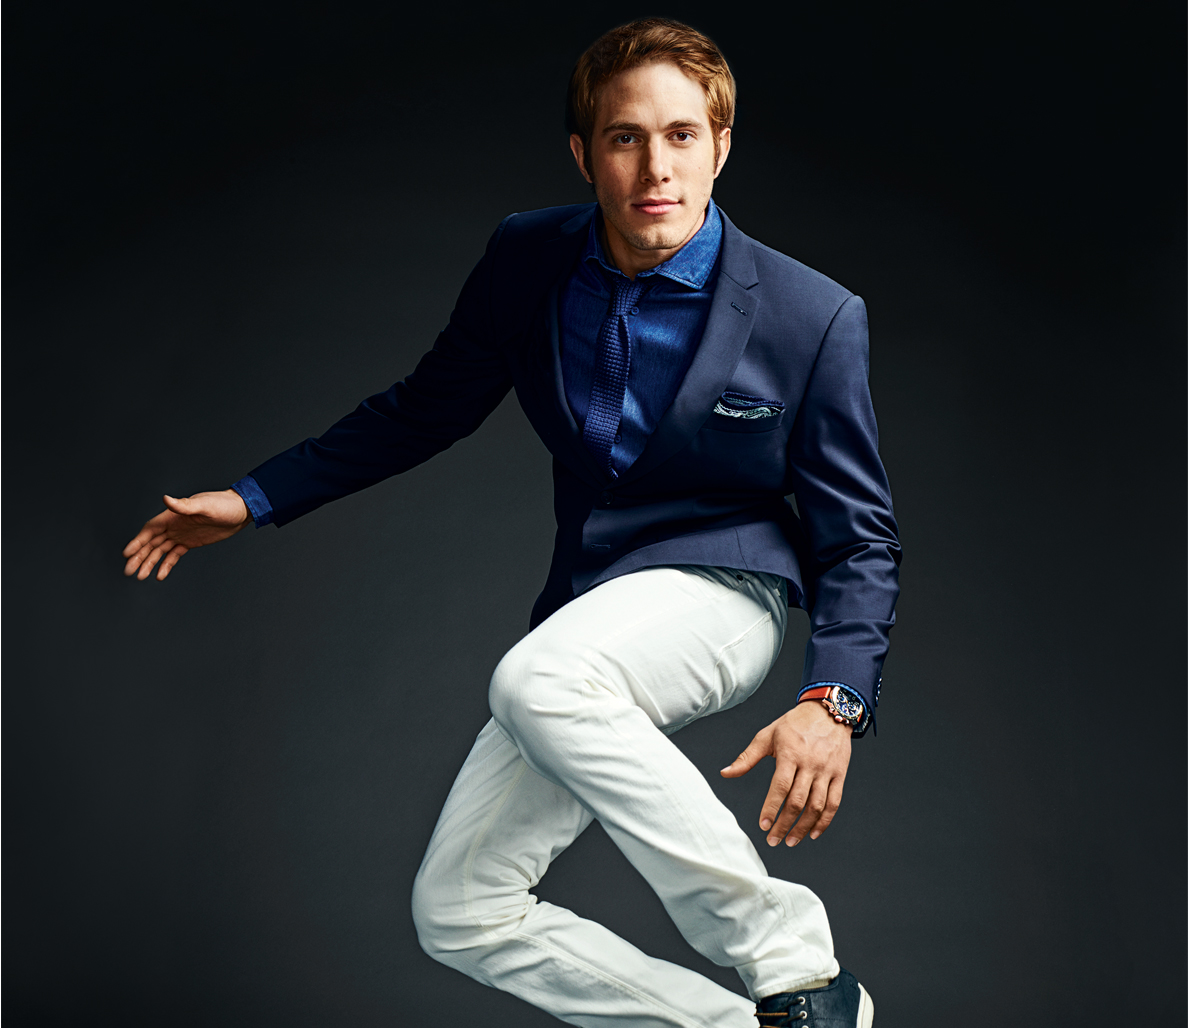 Blake Jenner Is The All American Leading Man Hollywood Needs Right Now